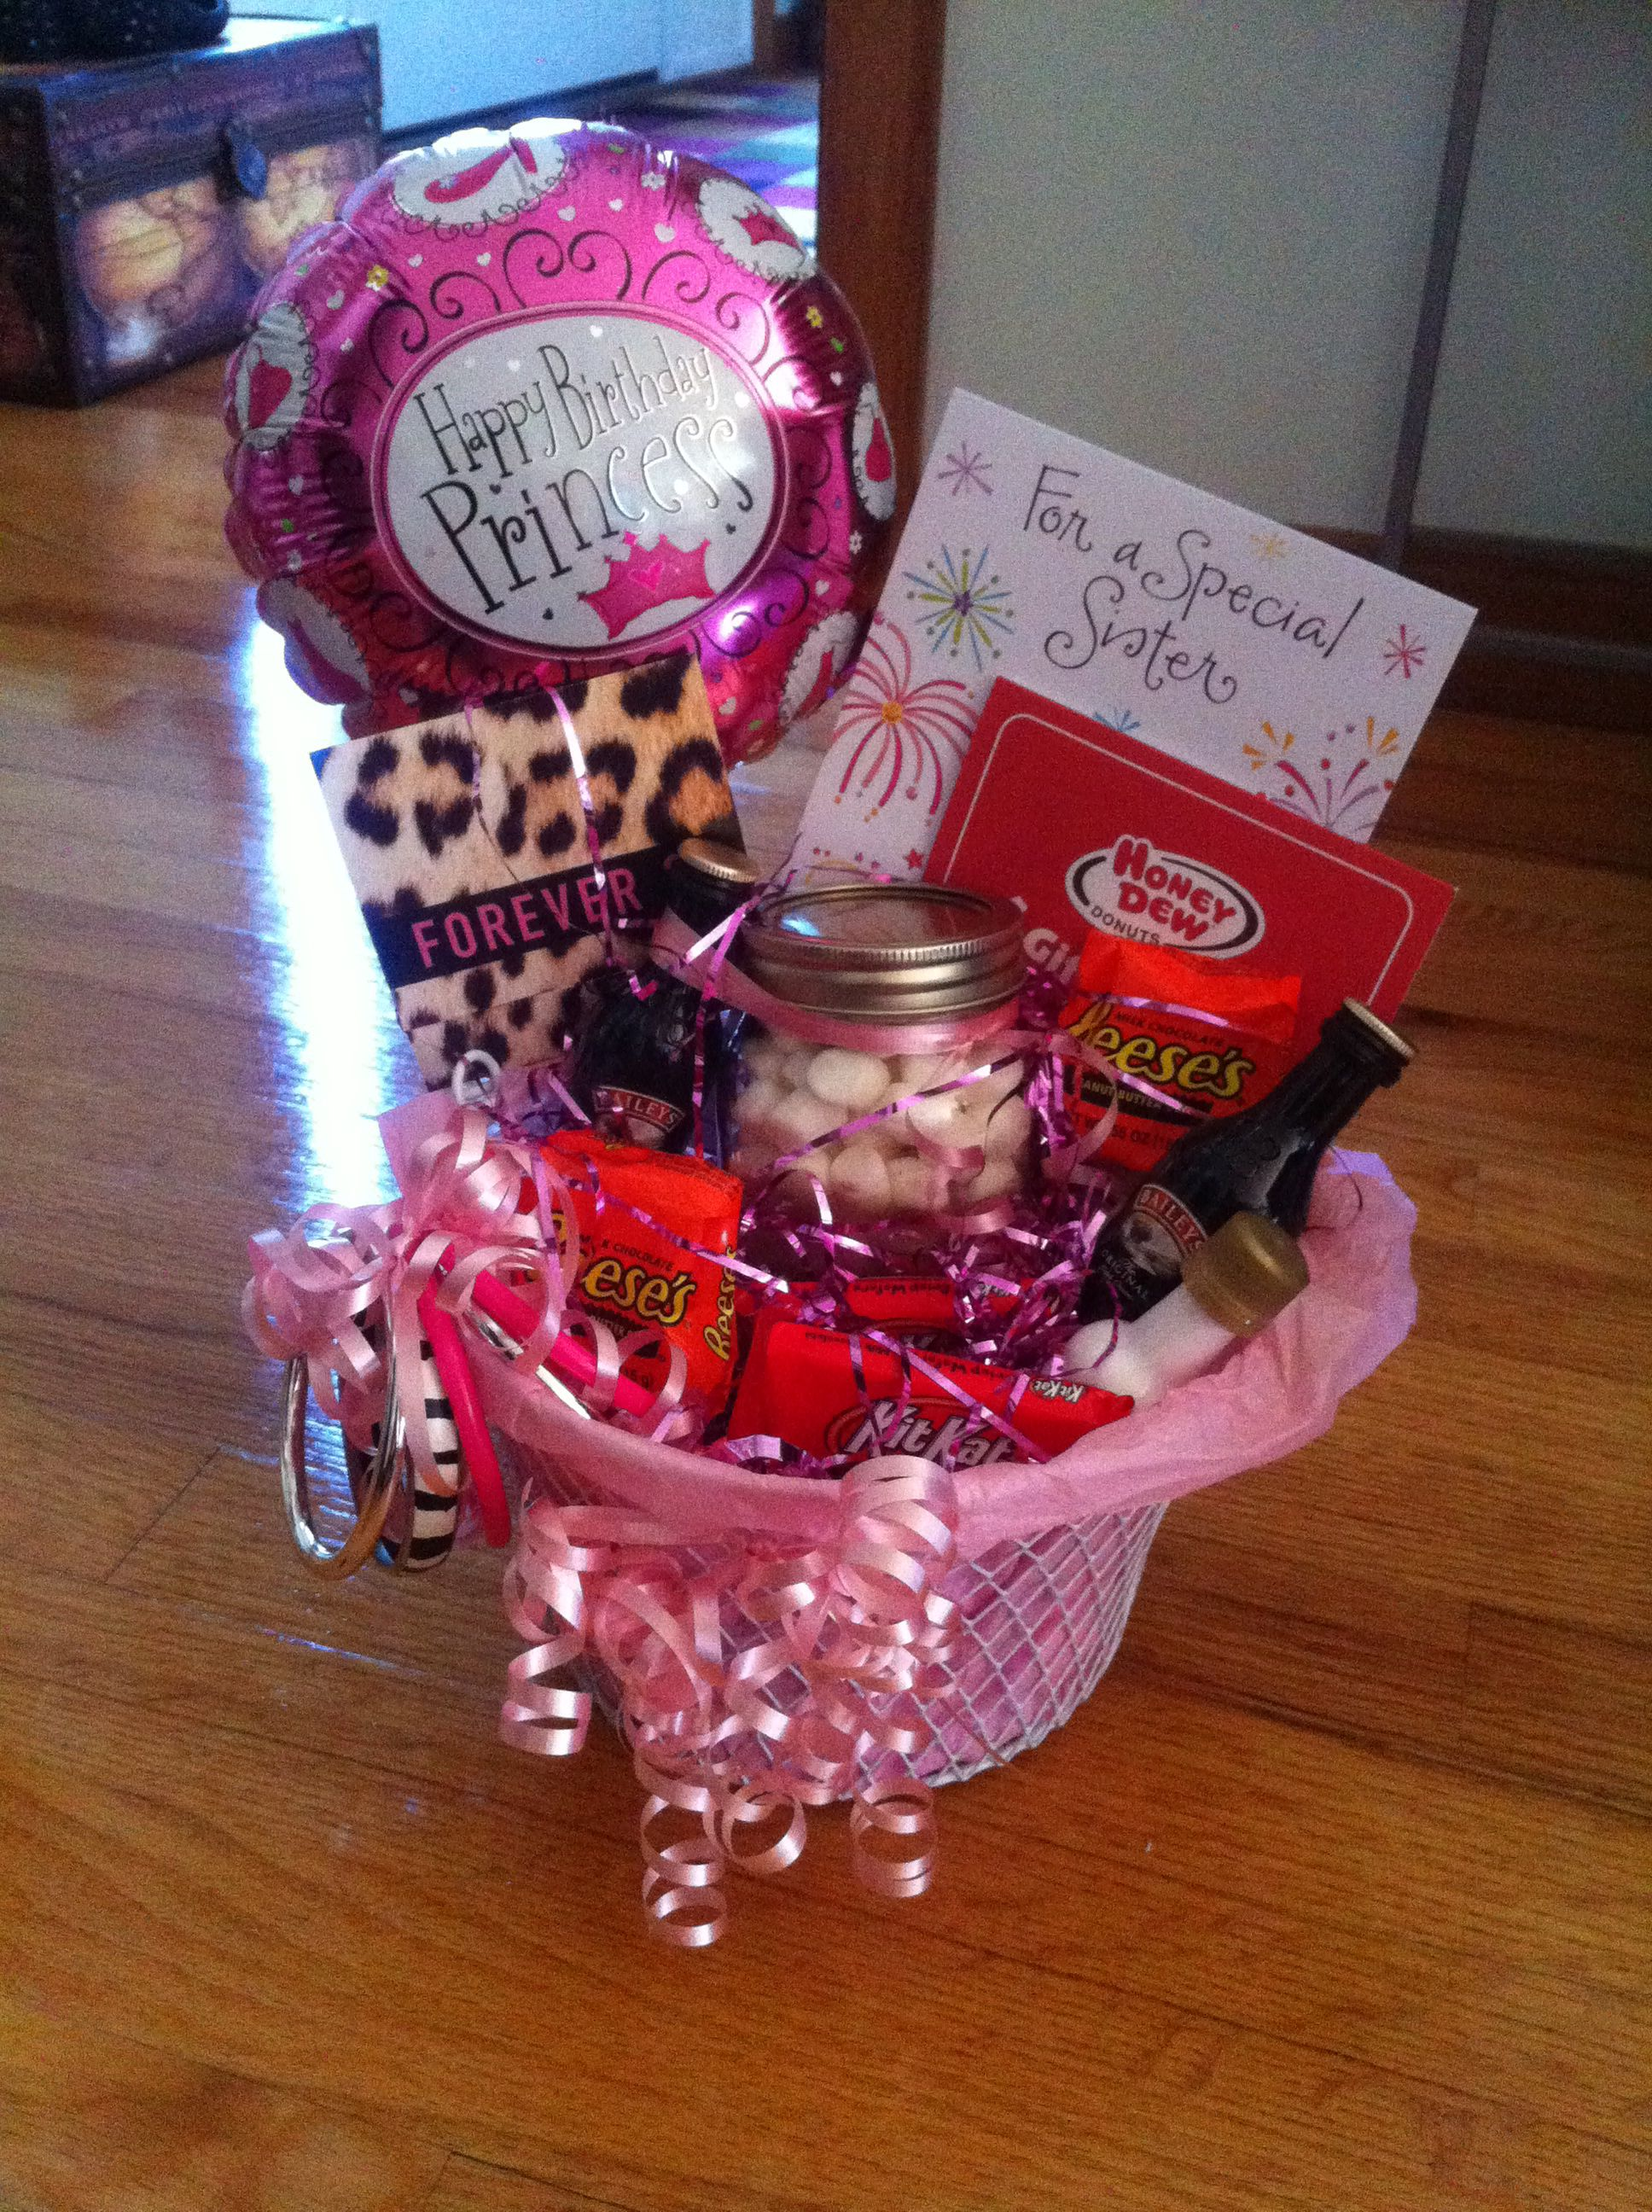 Happy Birthday Gift Basket. I made this for my sister but